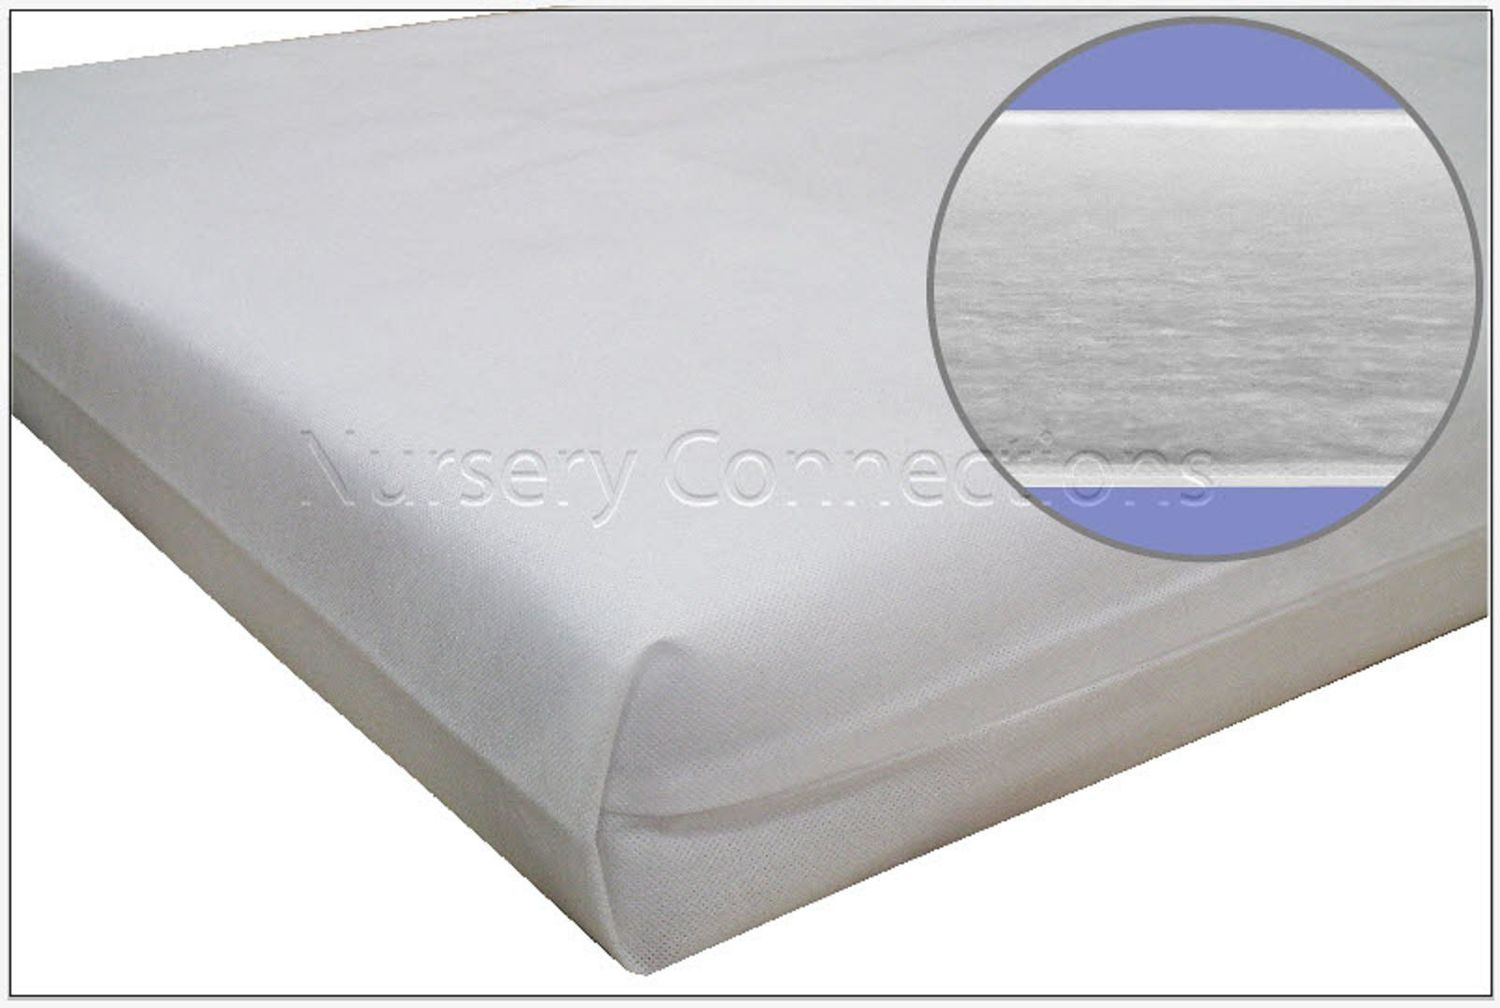 "New Kidtech Fibre Cot Cotbed Mattress, Optimum Comfort & Hygiene - Made in UK - 47""x24"""